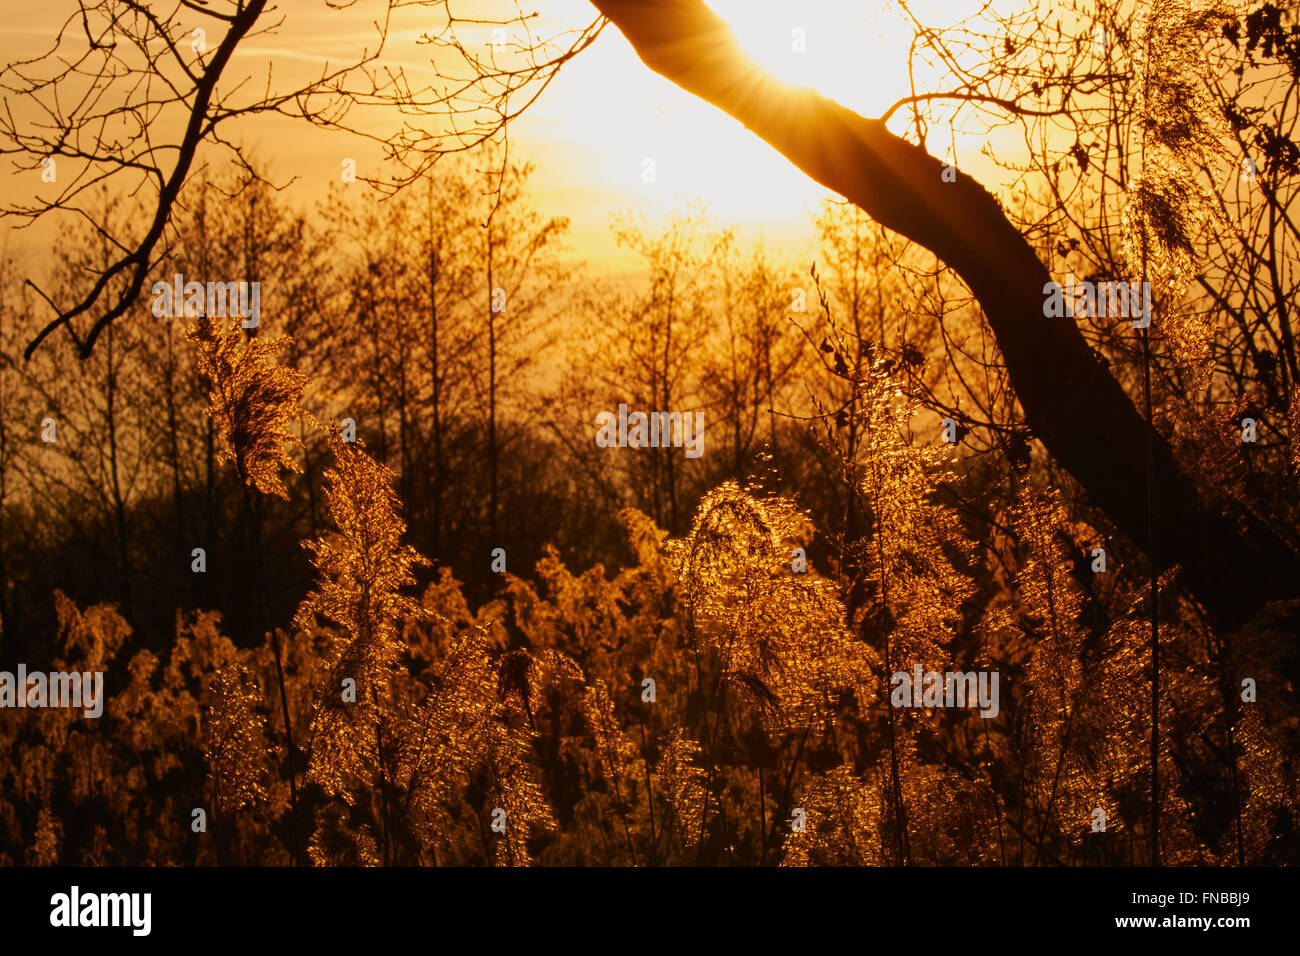 Sunset with trees and reeds in silhouette, the sunlight shining in the plumes - Stock Image